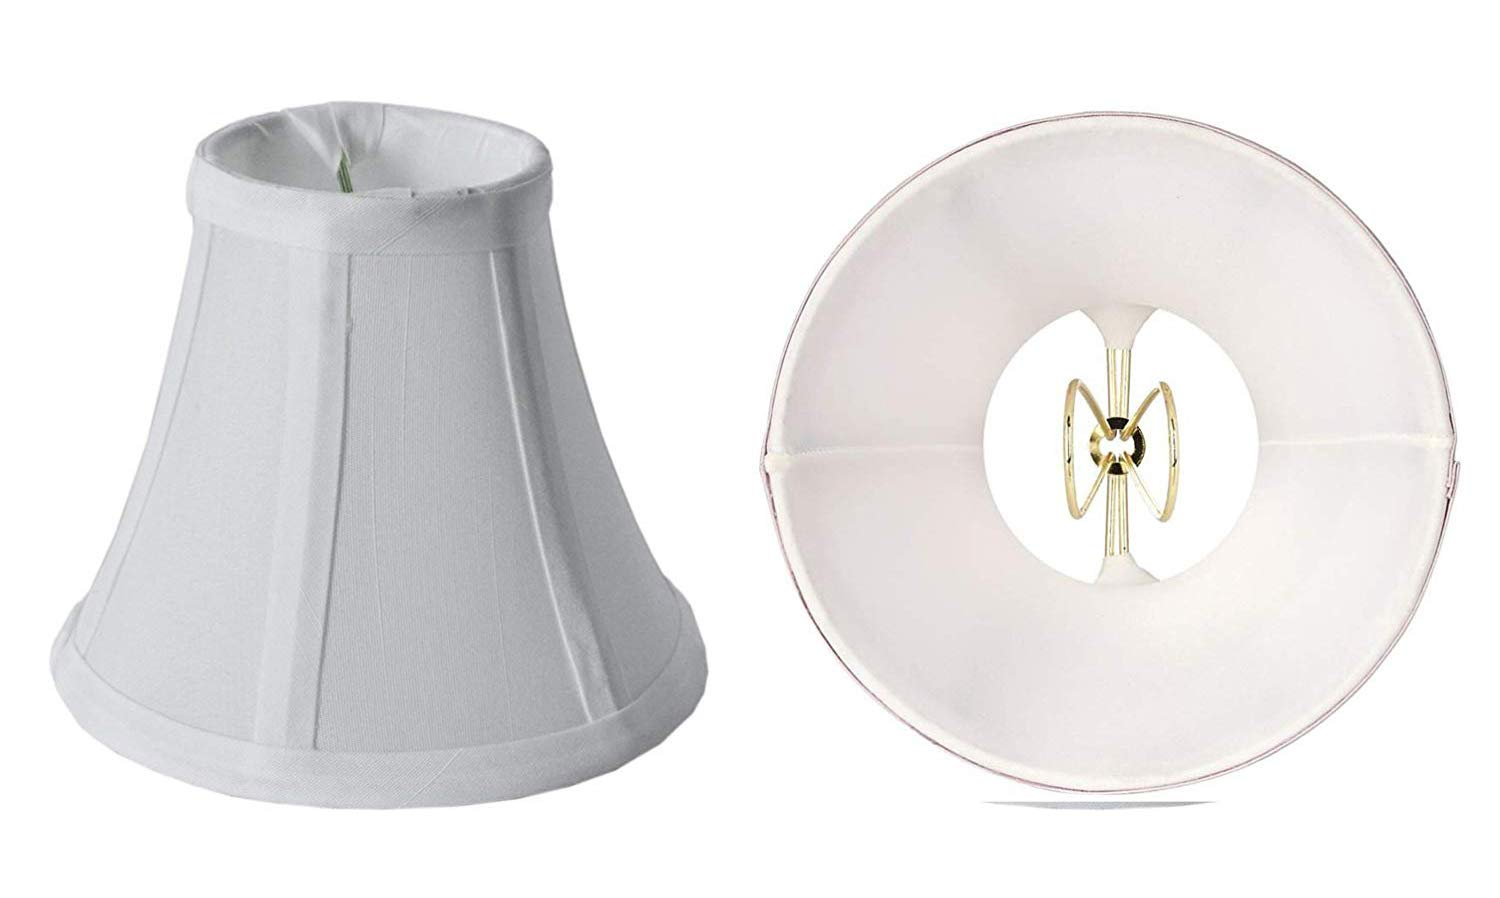 Mestar Decor Set of 2 Mini Bell Lamp Shade Lampshade 5''H Clip On Style for Chandeliers Wall Sconces Accent Lamps Beautiful Lighting Decor - White (2pcs)